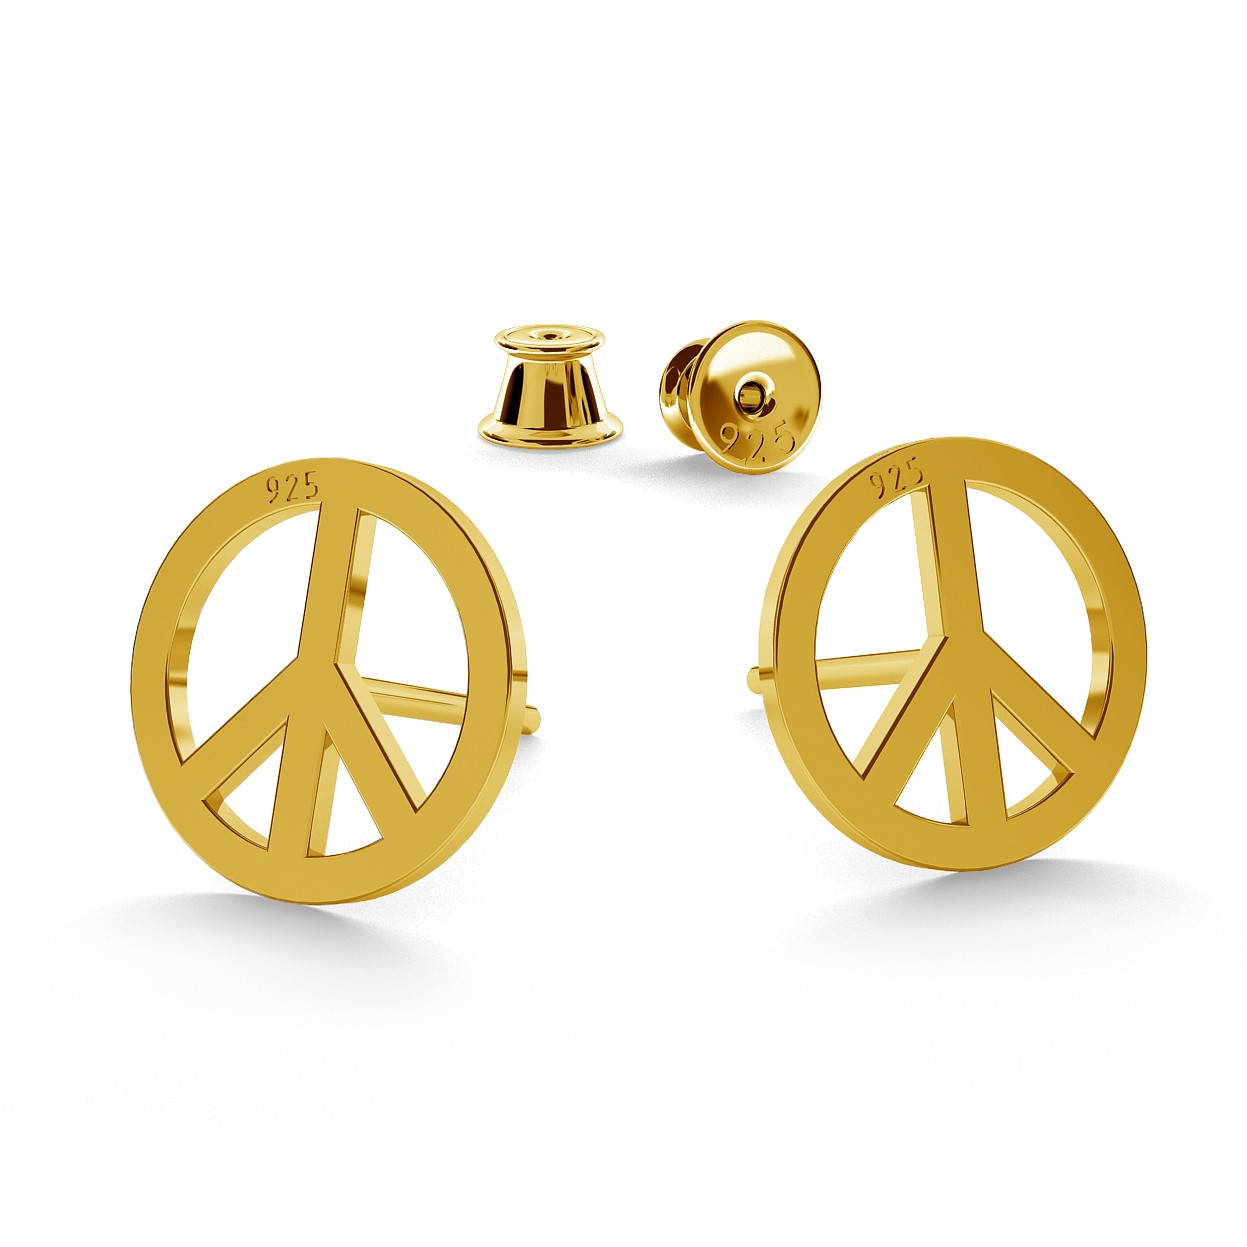 PEACE SYMBOL EARRINGS - BASIC